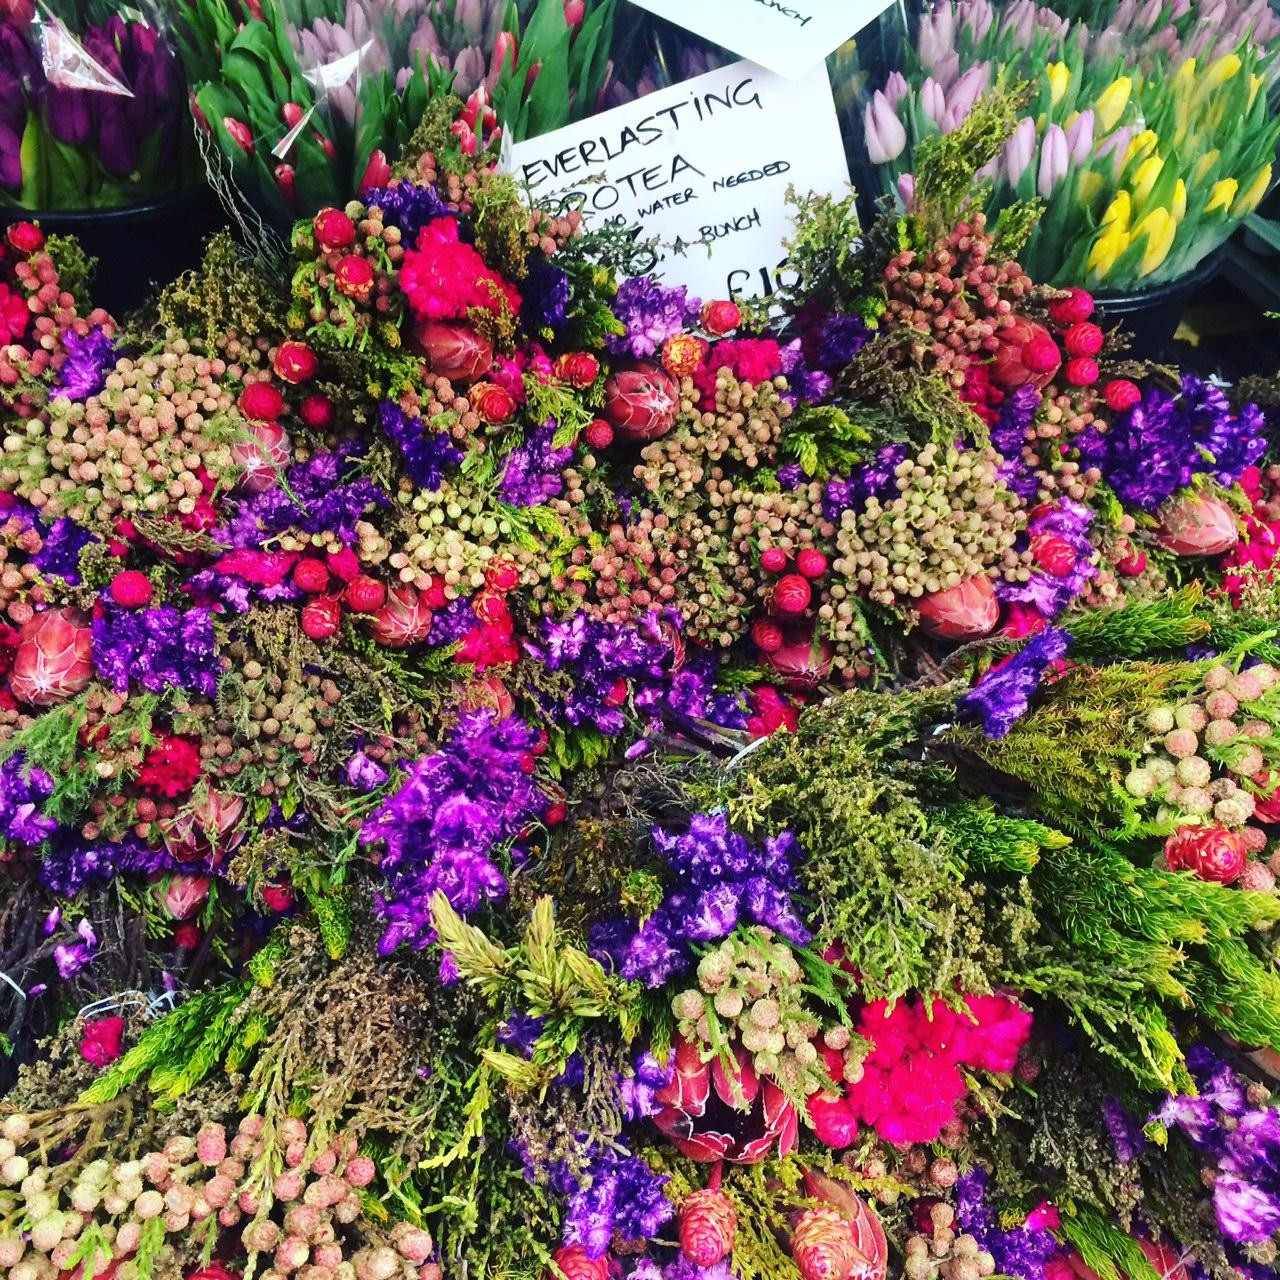 Empty Vase Florist Los Angeles Ca Of Columbia Road Flower Market Guide Tips for Buying Flowers at Intended for the Flowers are Better Quality In the Morning but Cheaper In the Early afternoon as the Crowds Die Down Nearest Tube is Old Street but Its Walkable From